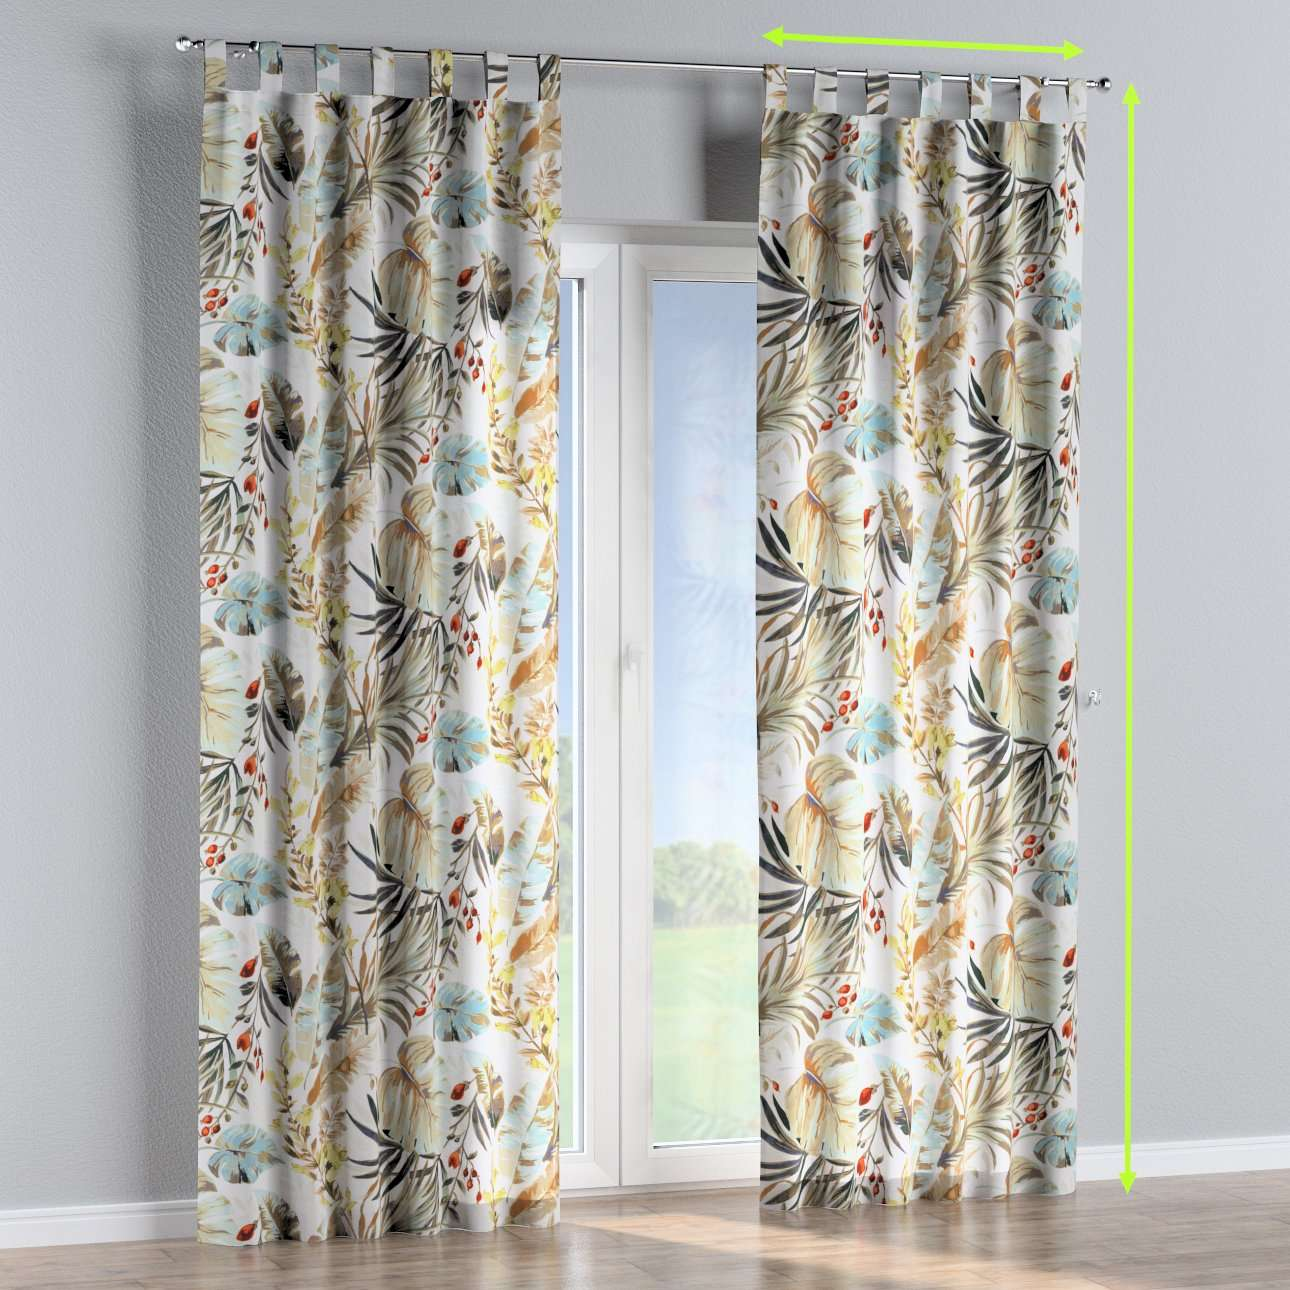 Tab top curtains in collection Urban Jungle, fabric: 141-42